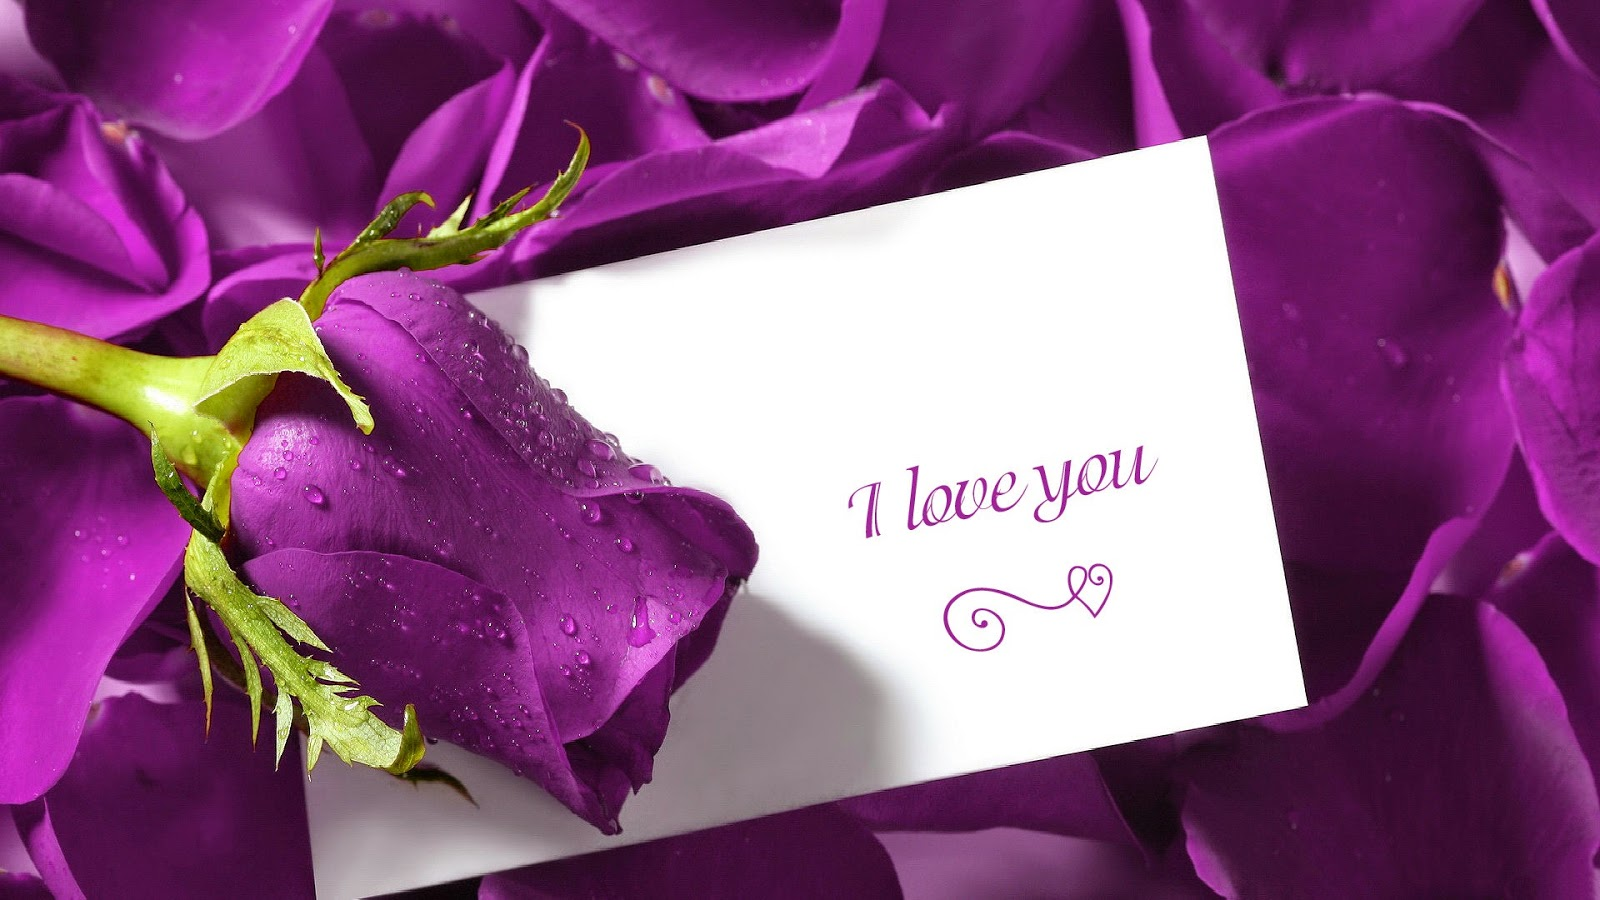 I Love You With Flowers, part 2